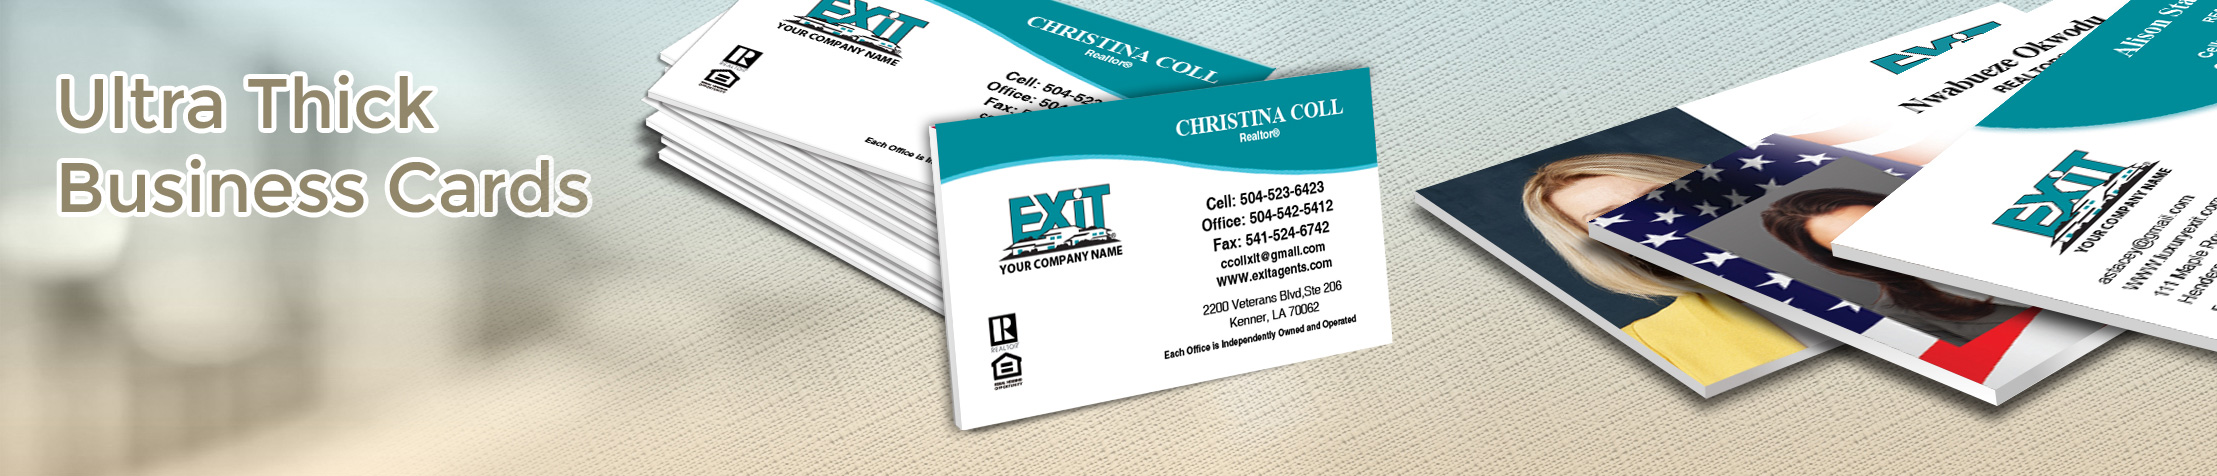 Exit Realty Ultra Thick Business Cards - Exit Realty Approved Vendor - Luxury, Thick Stock Business Cards with a Matte Finish for Realtors | BestPrintBuy.com